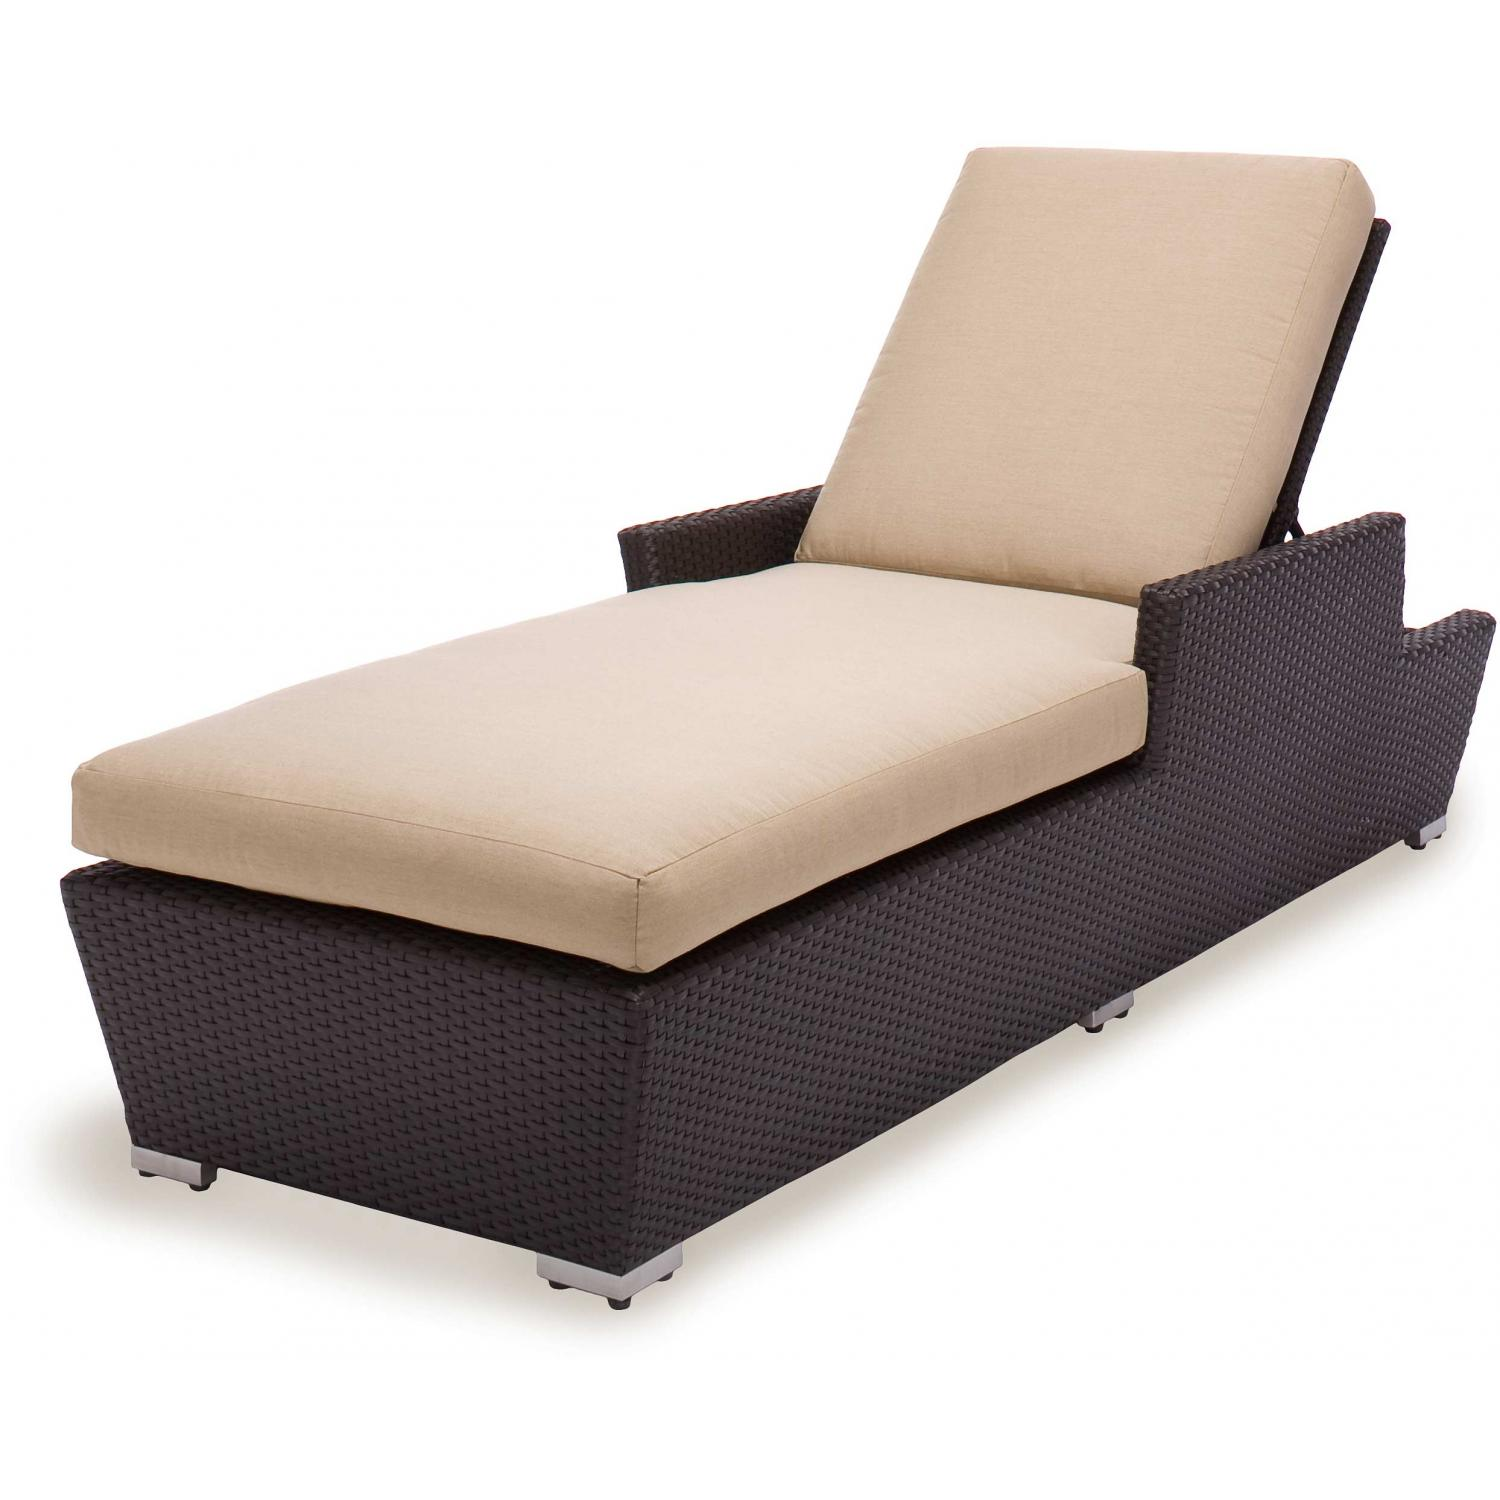 Caluco Maxime Wicker Single Chaise Lounge